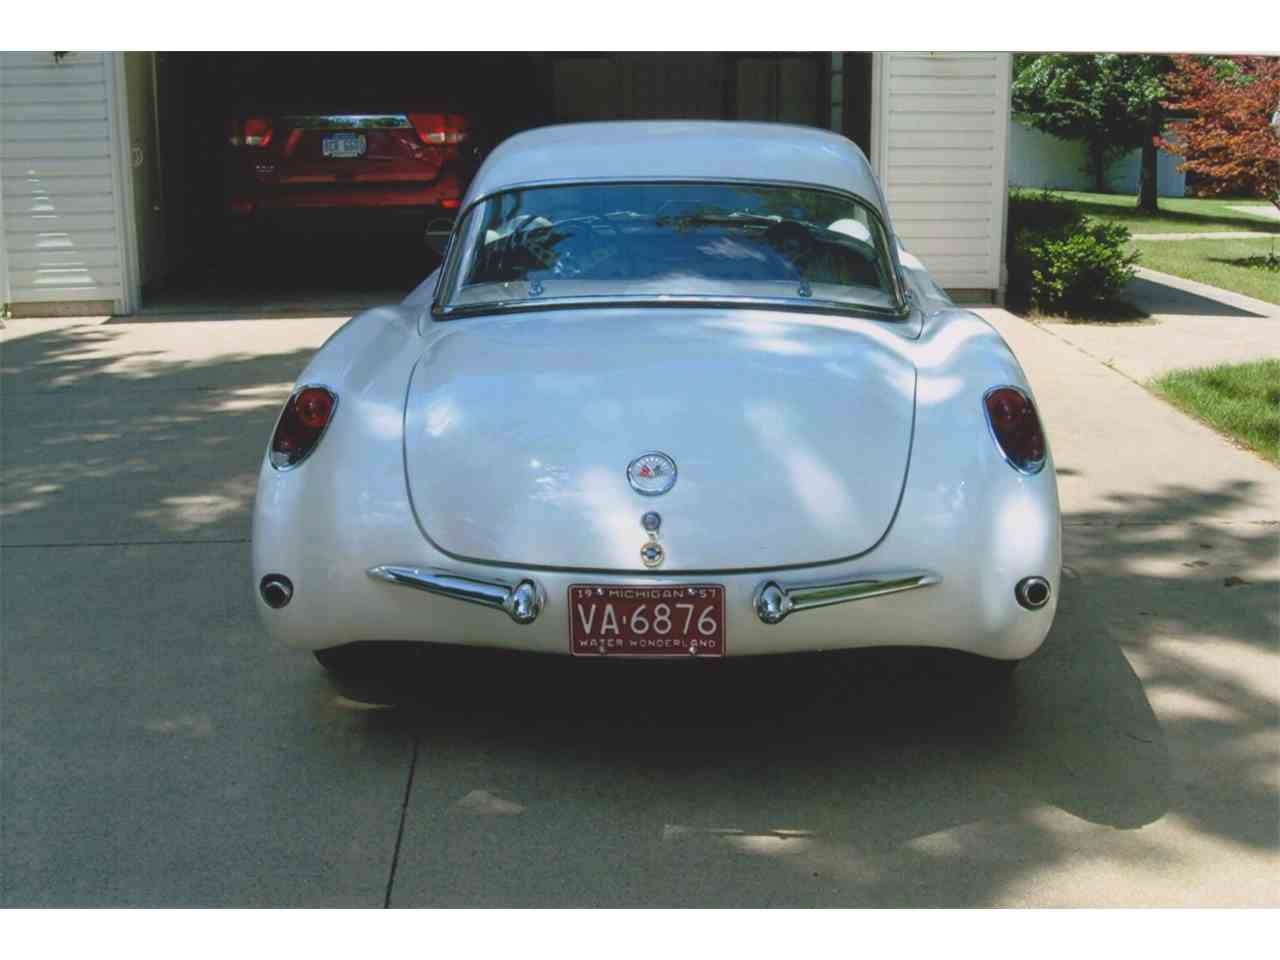 Large Picture of 1957 Corvette located in Midland Michigan - $65,000.00 Offered by a Private Seller - LHW7